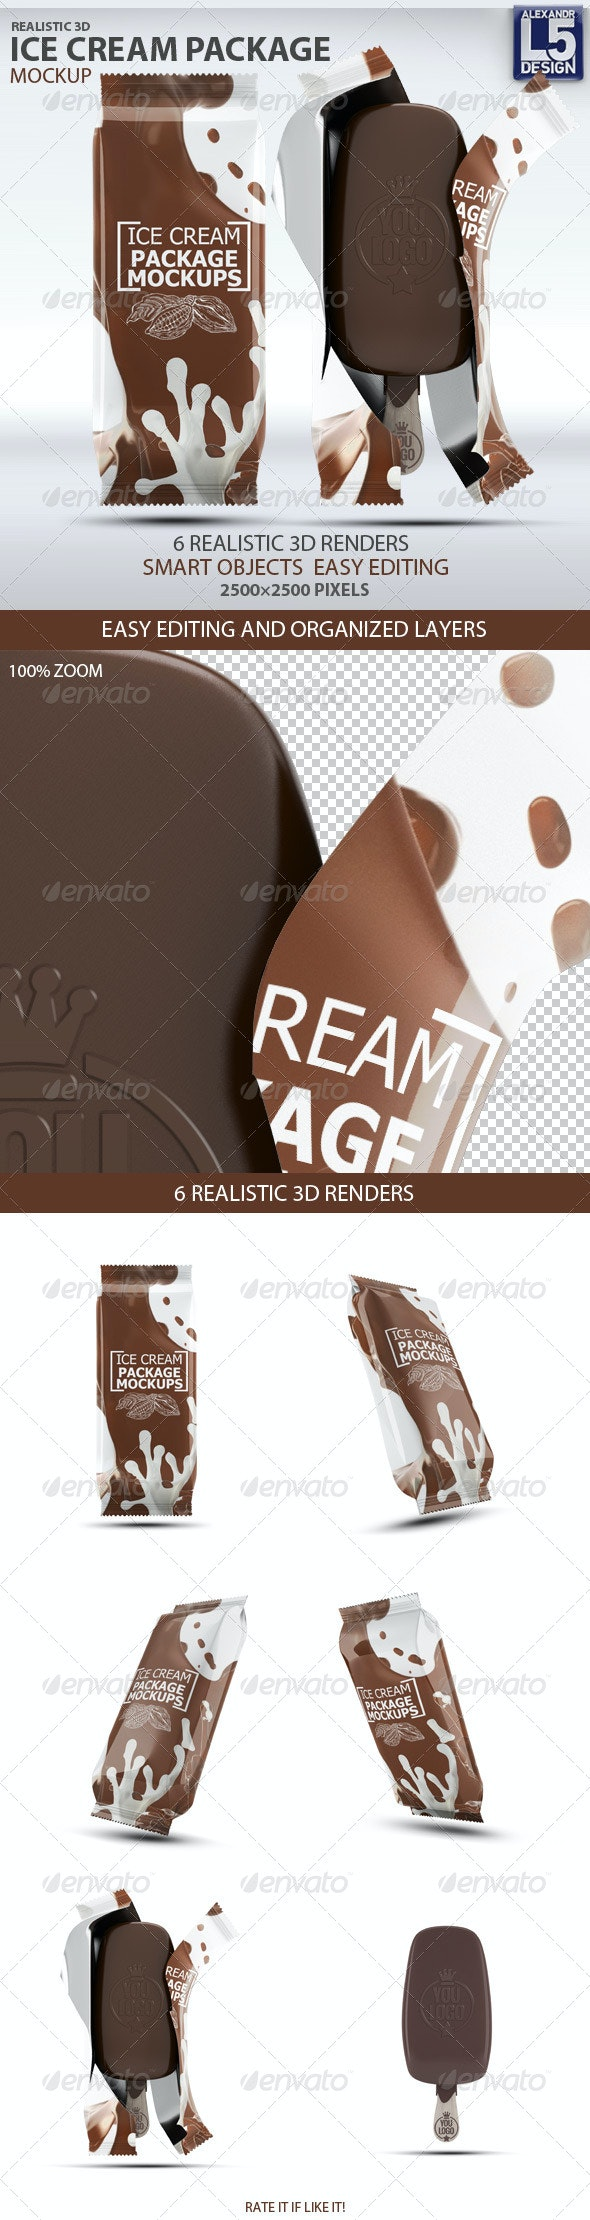 Ice Cream Package Mock-Up - Food and Drink Packaging